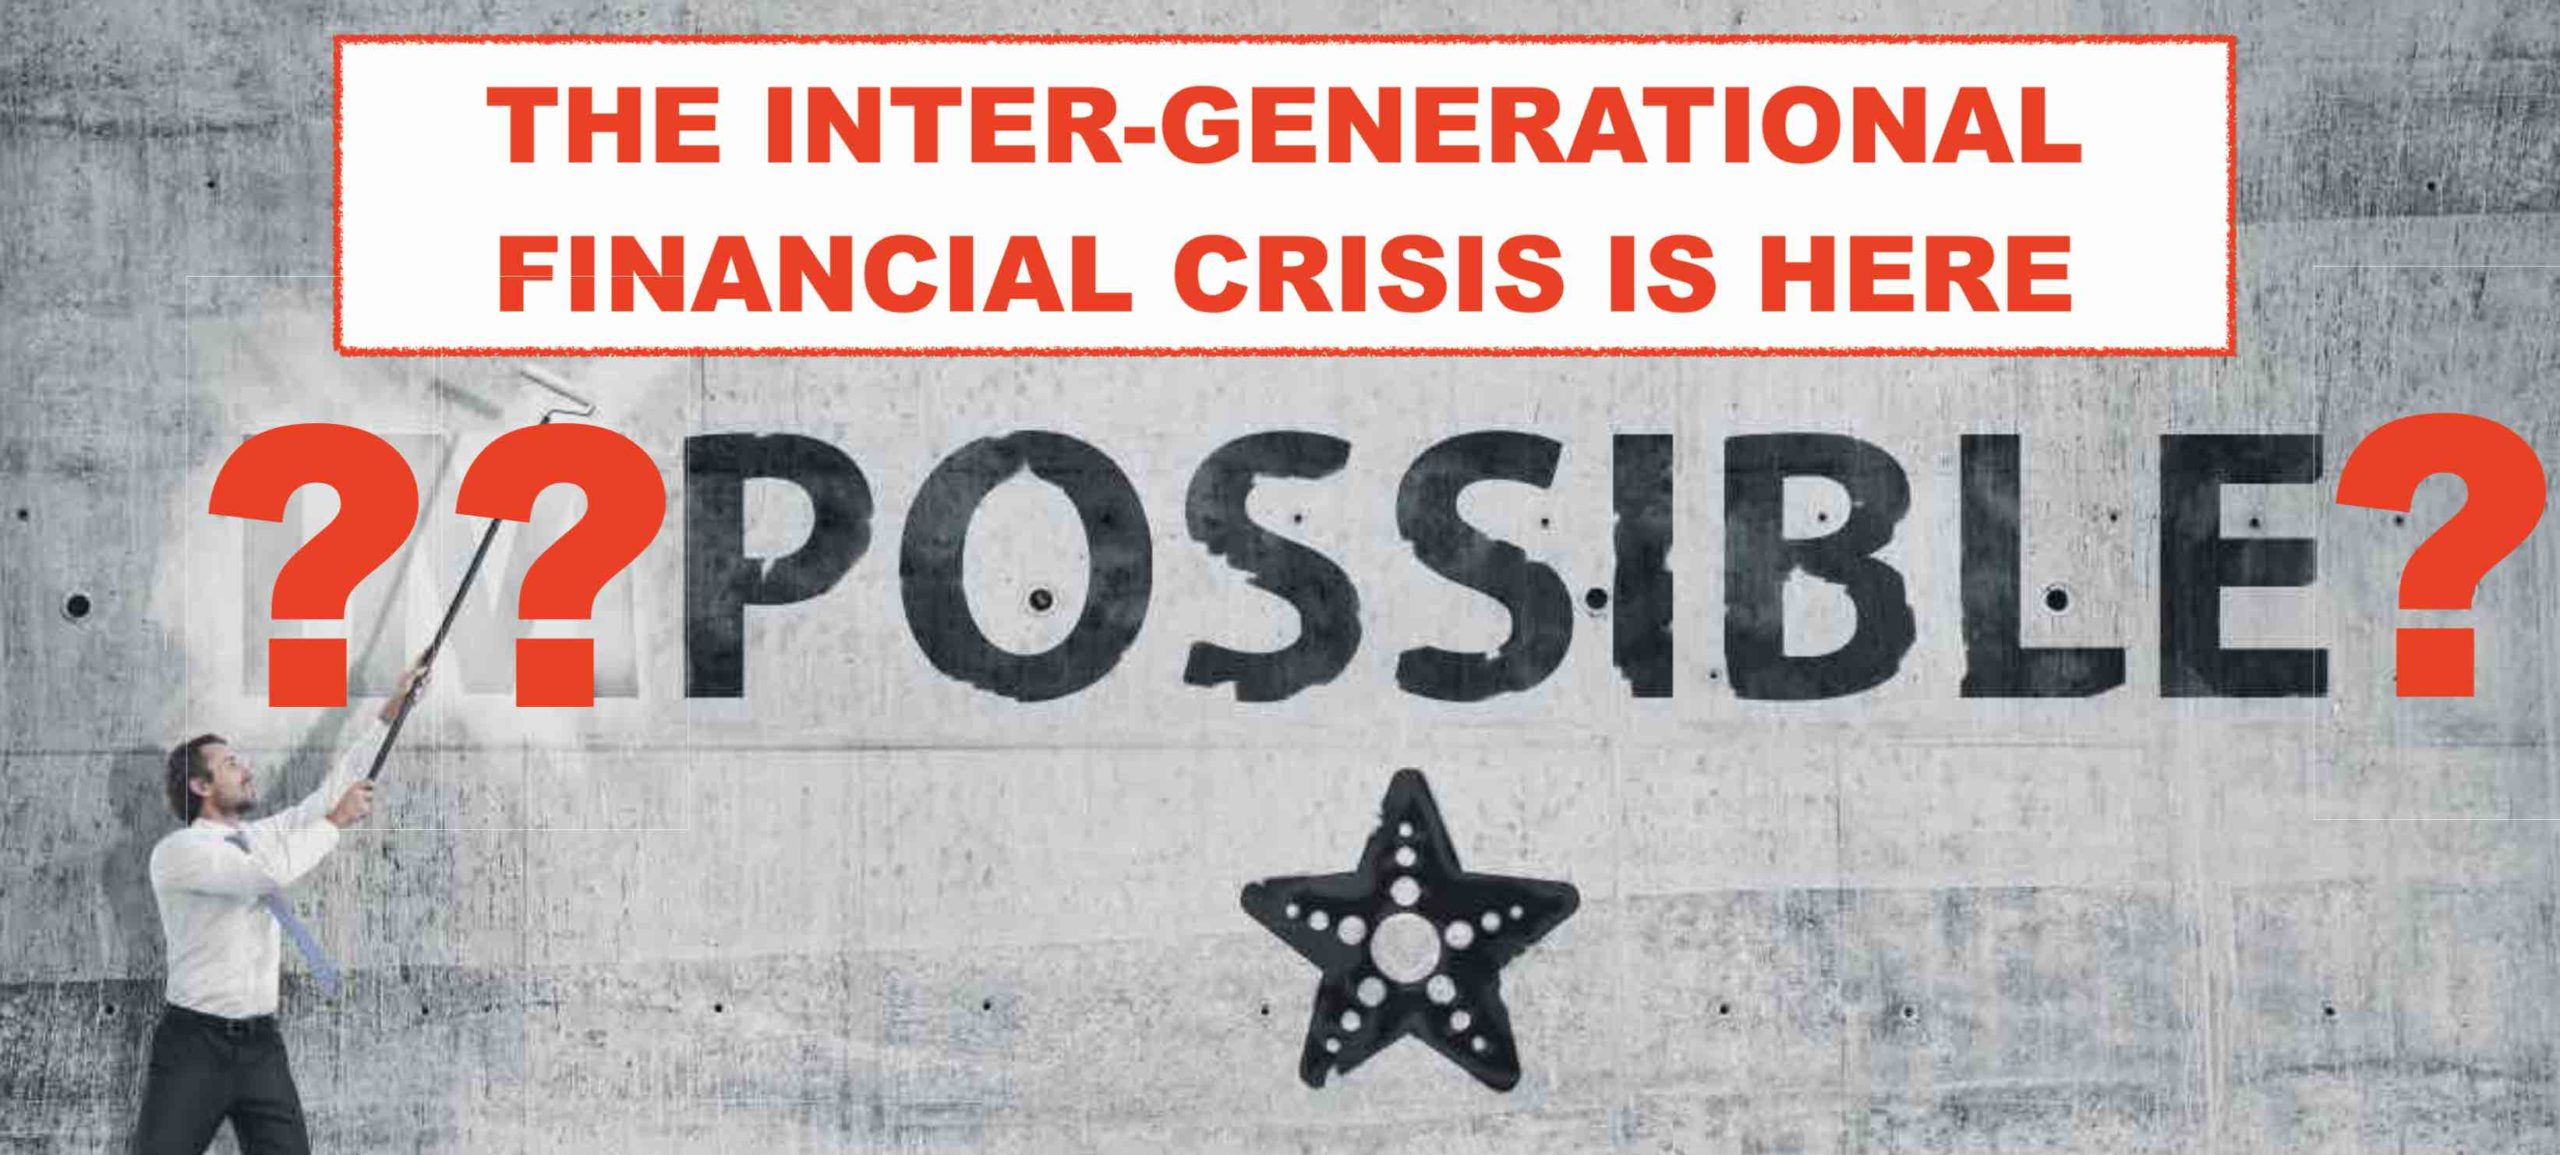 Inter-Generational Crisis is here